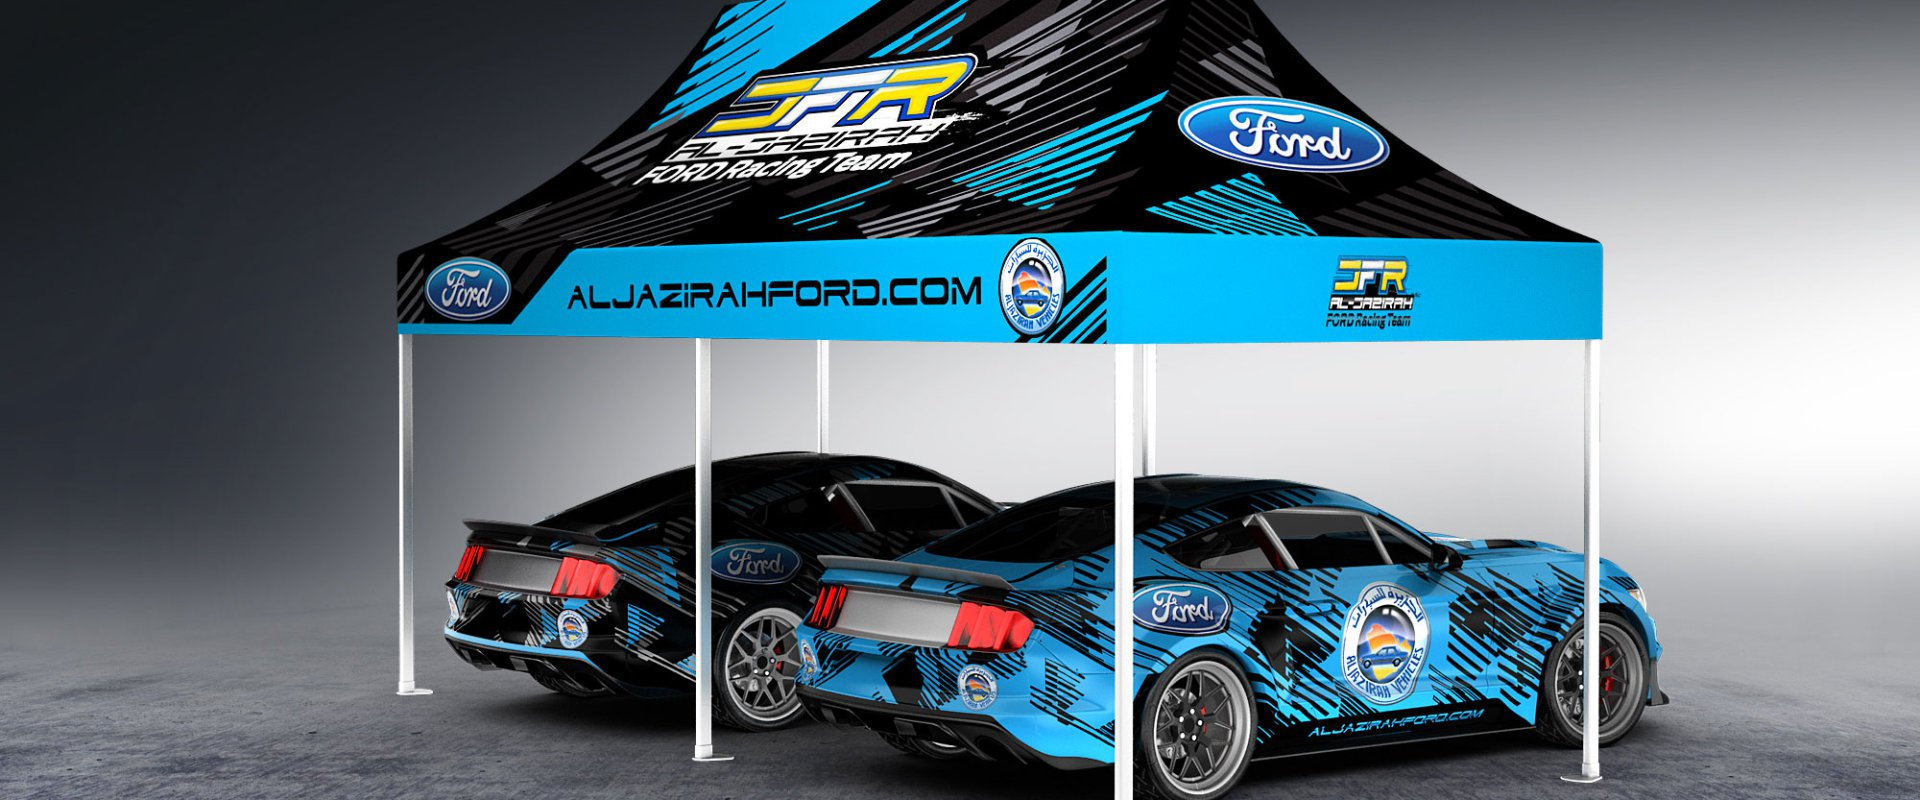 JFR Al Jazirah Ford Racing Team #2